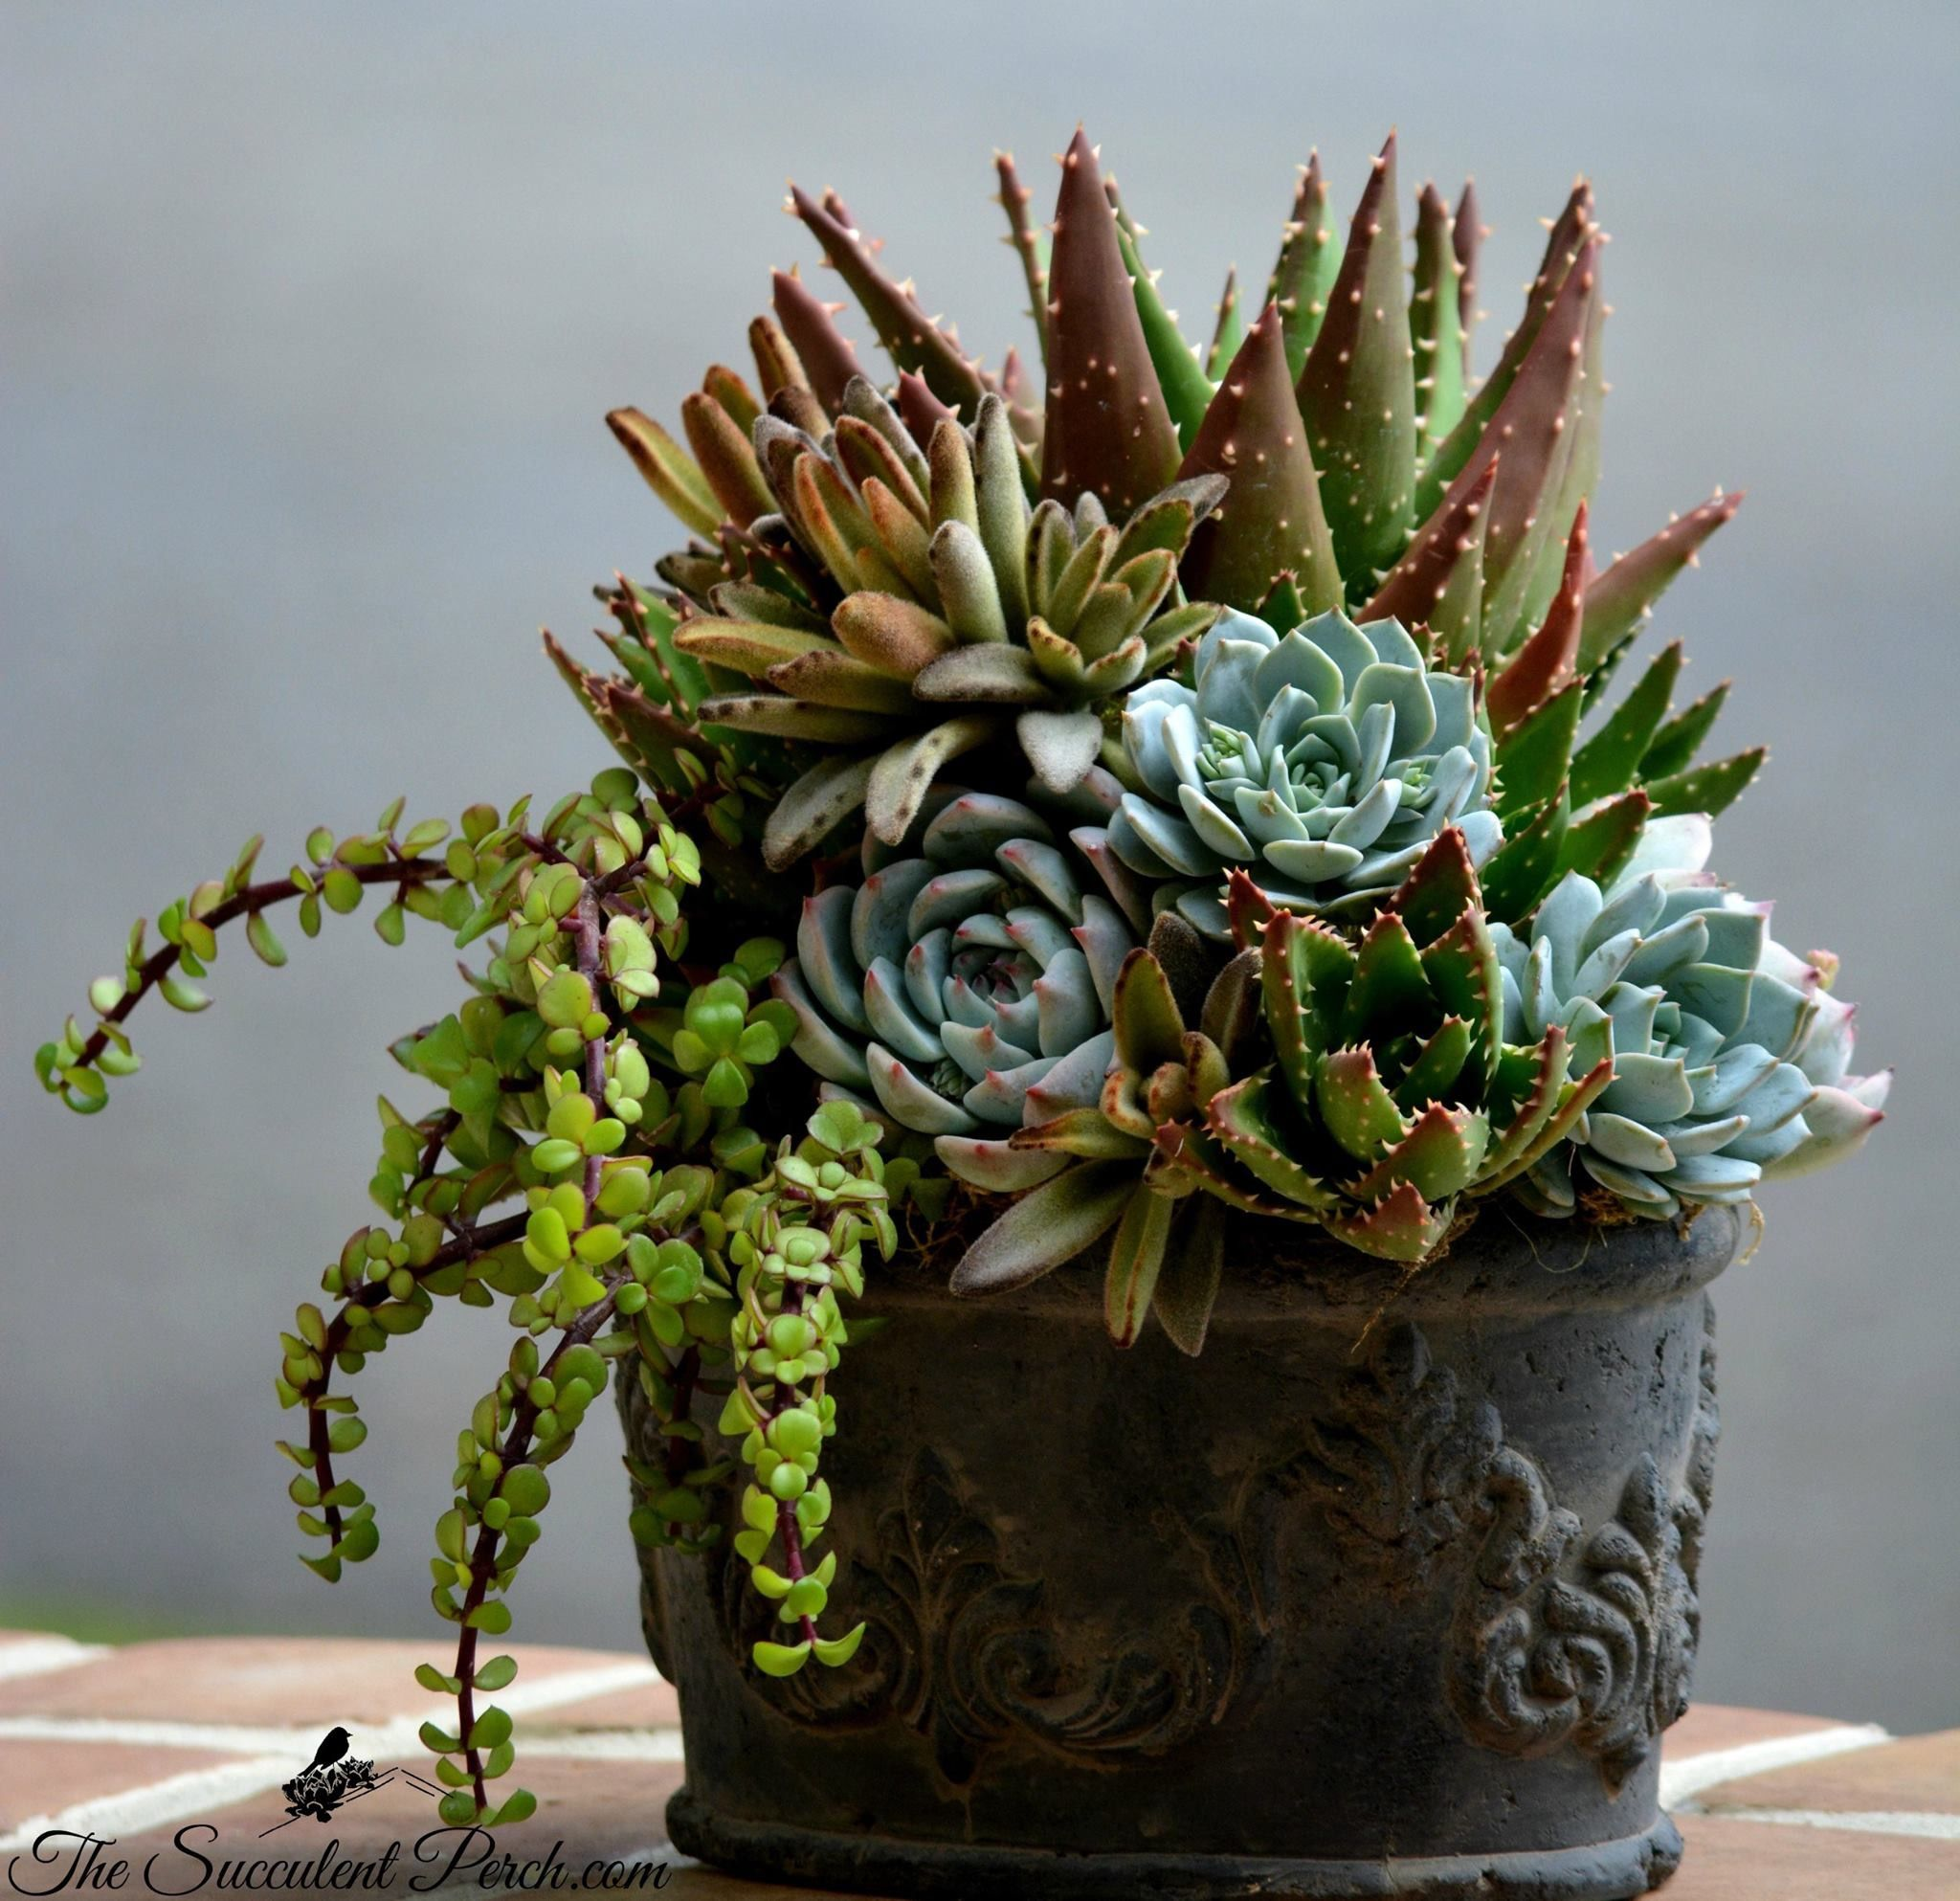 Designing With Shades Of Browns And Blues Designphoto The Succulent